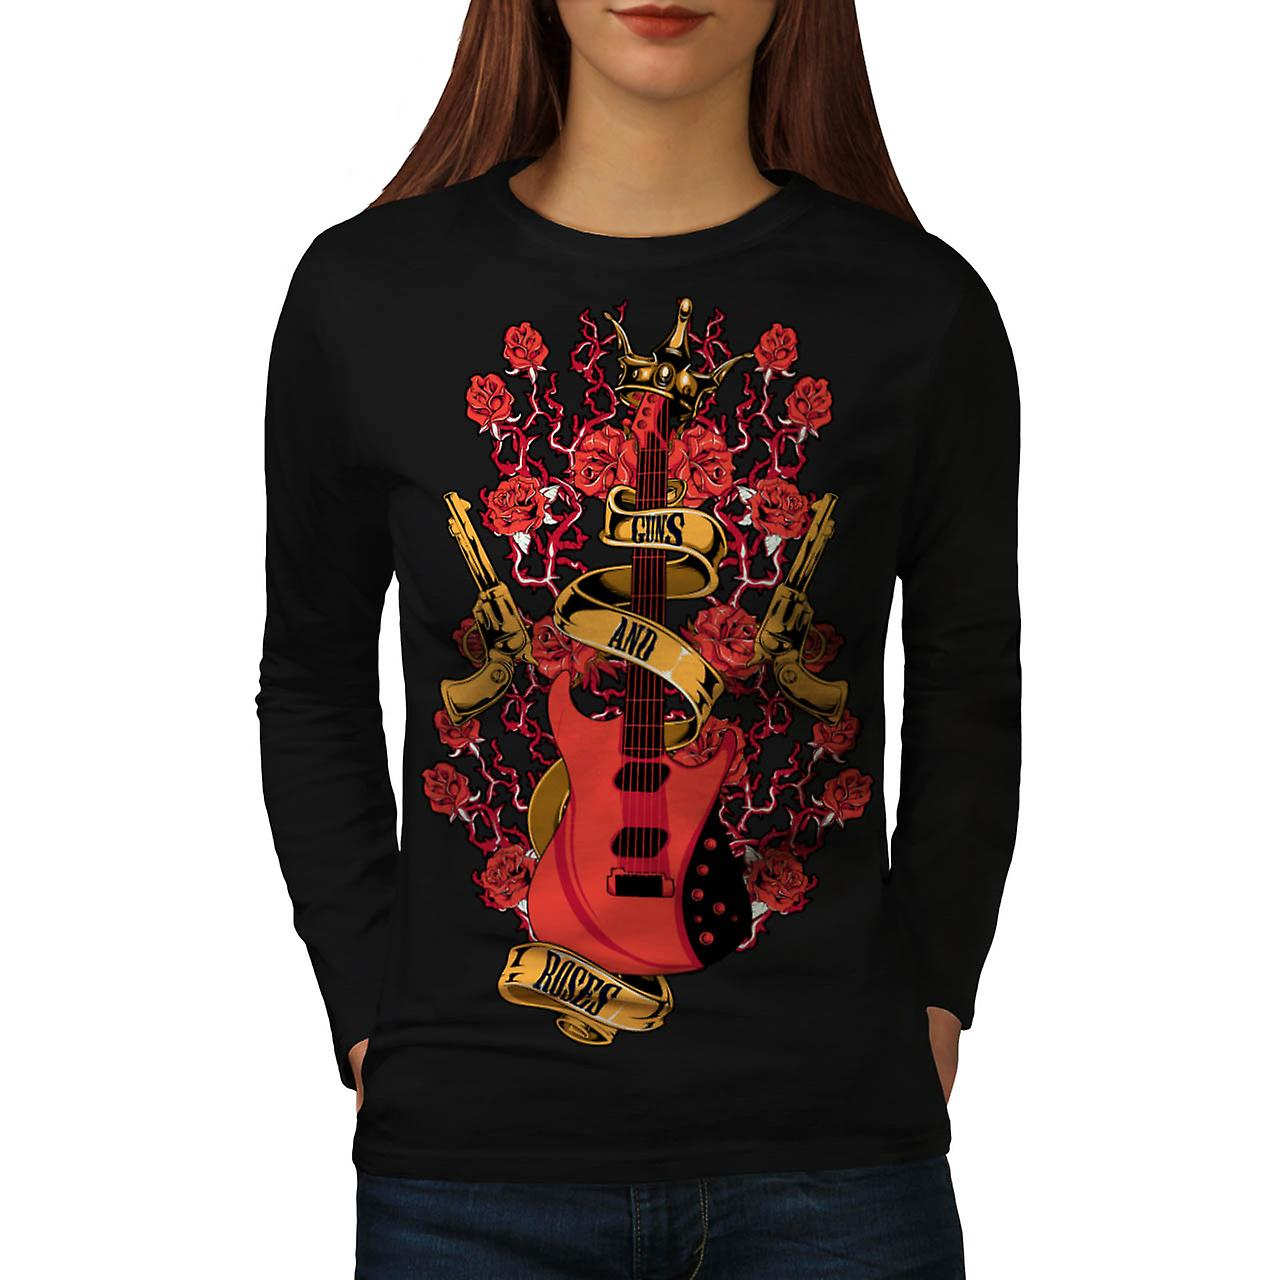 Roses and Guns Rock Women Black Long Sleeve T-shirt | Wellcoda